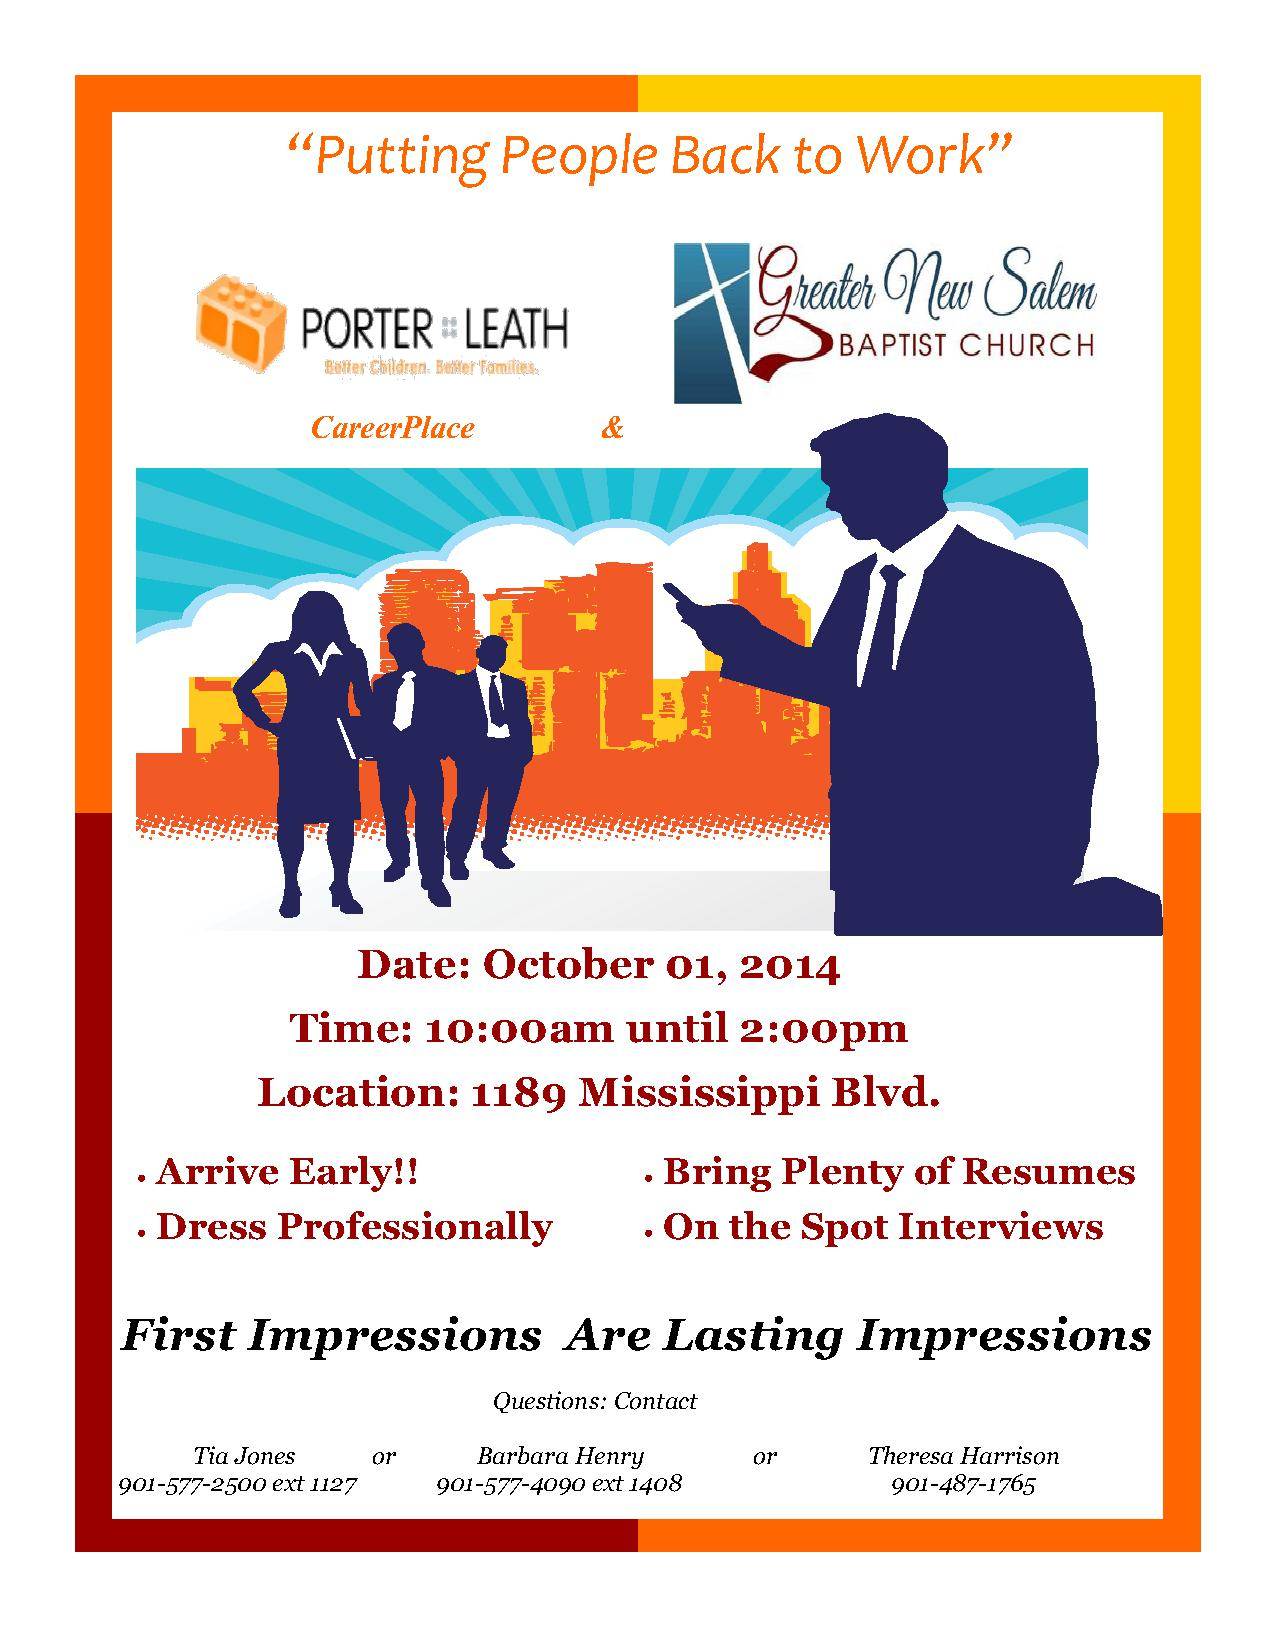 porter leath job fair flyer 10 01 2014_1